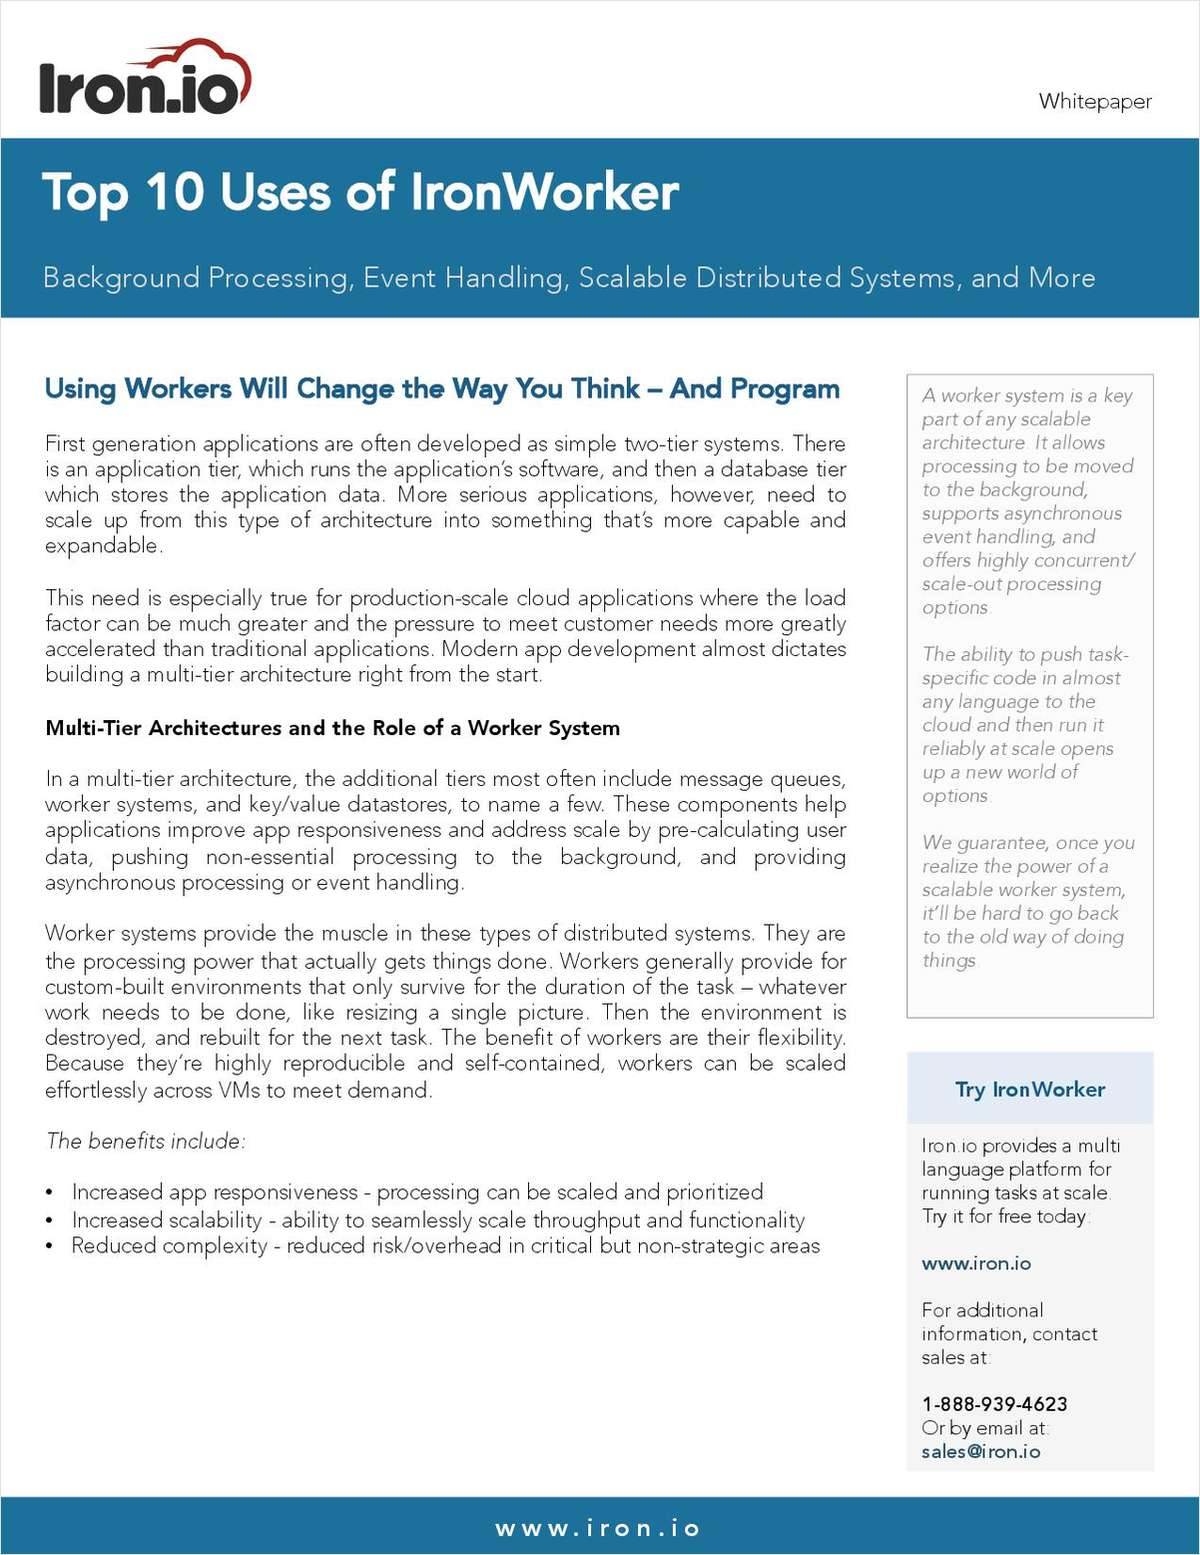 THE TOP 10 USE CASES FOR IRONWORKER